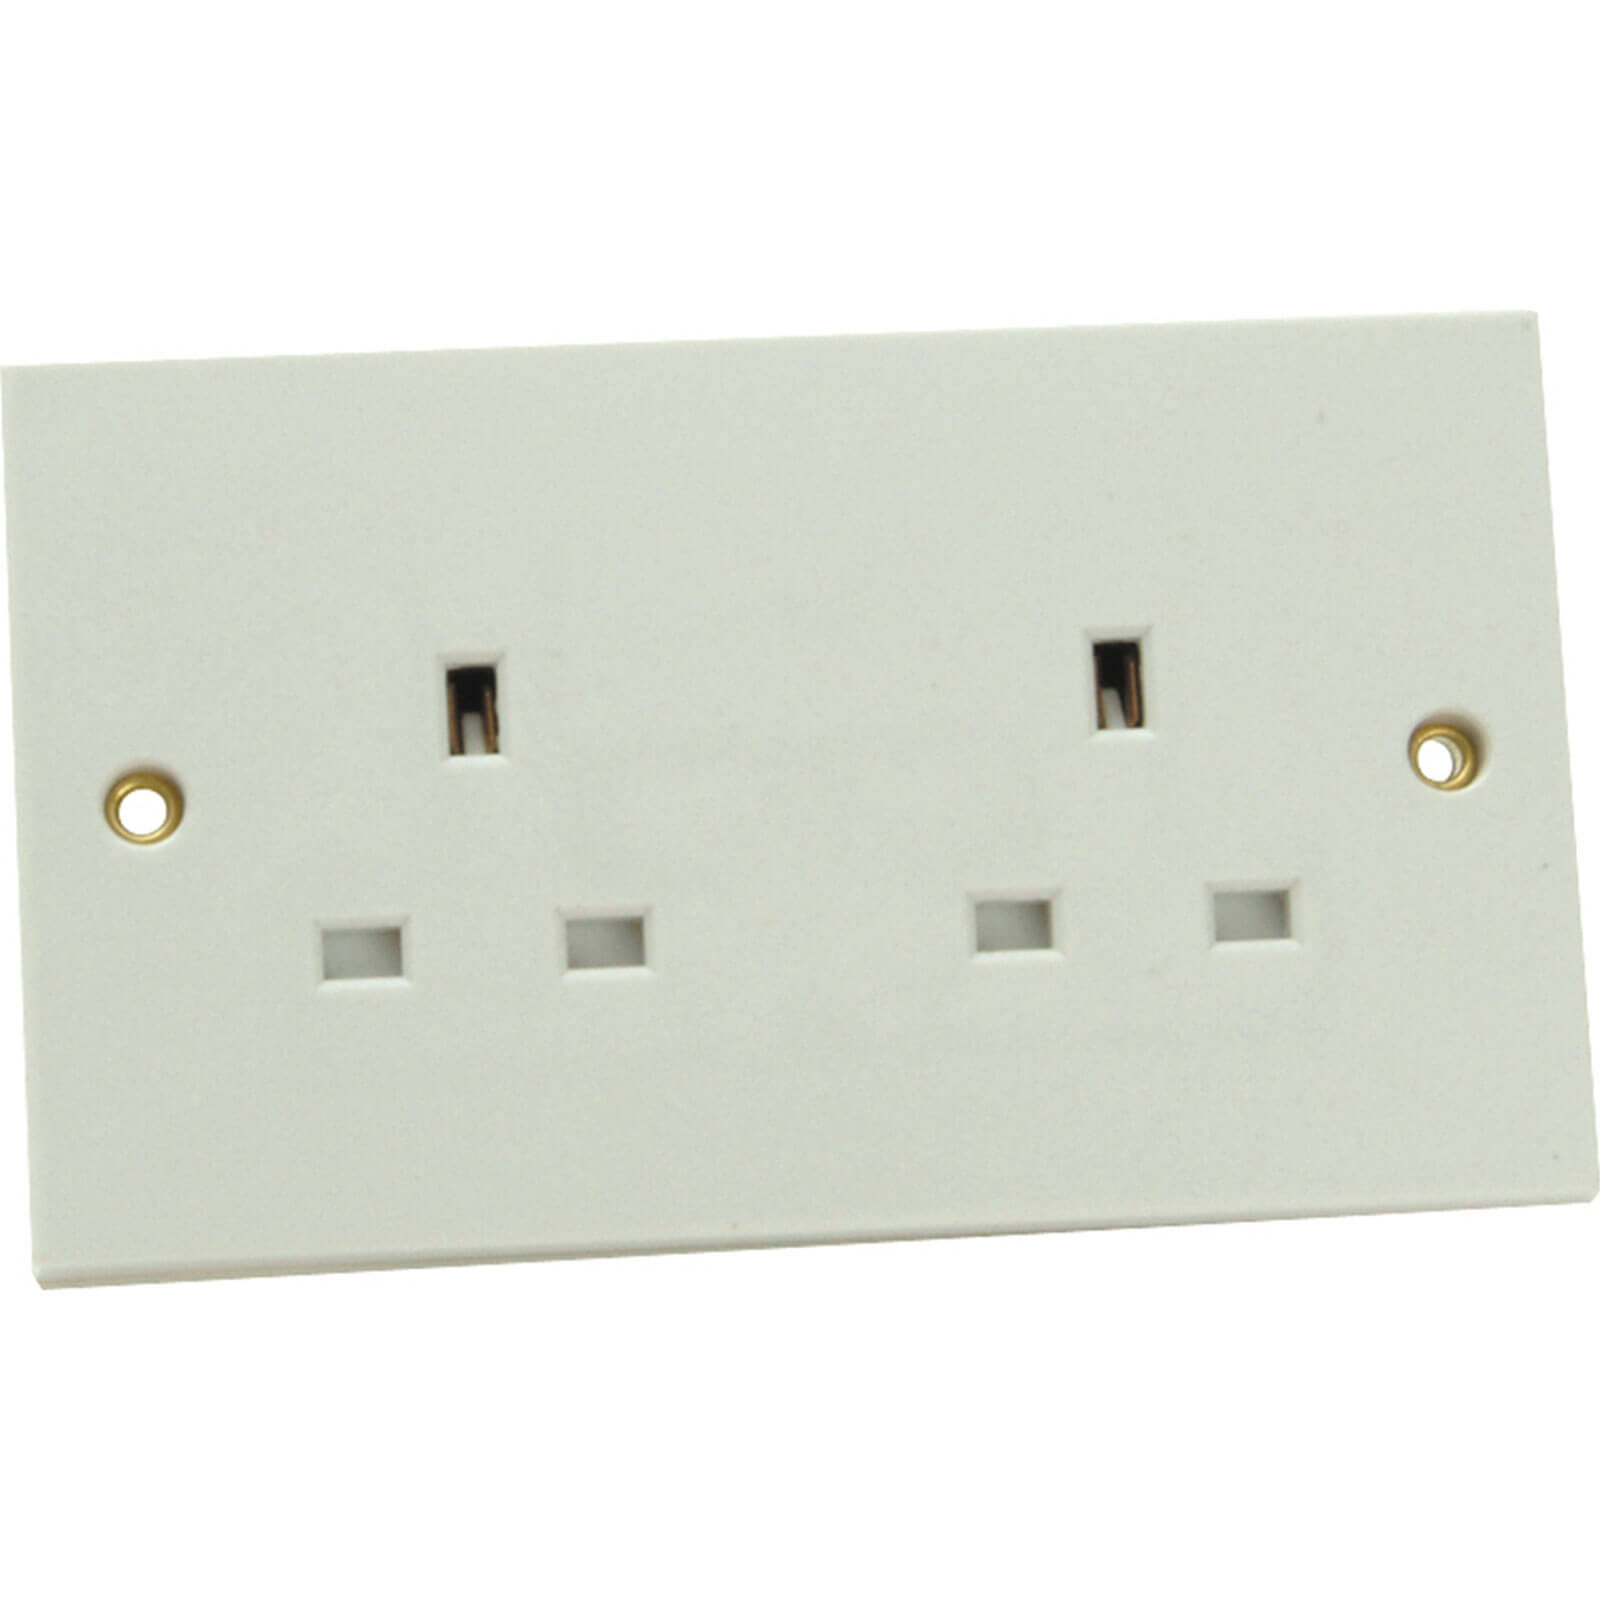 Image of Smj 2 Gang 13Amp Unswitched Socket 240v